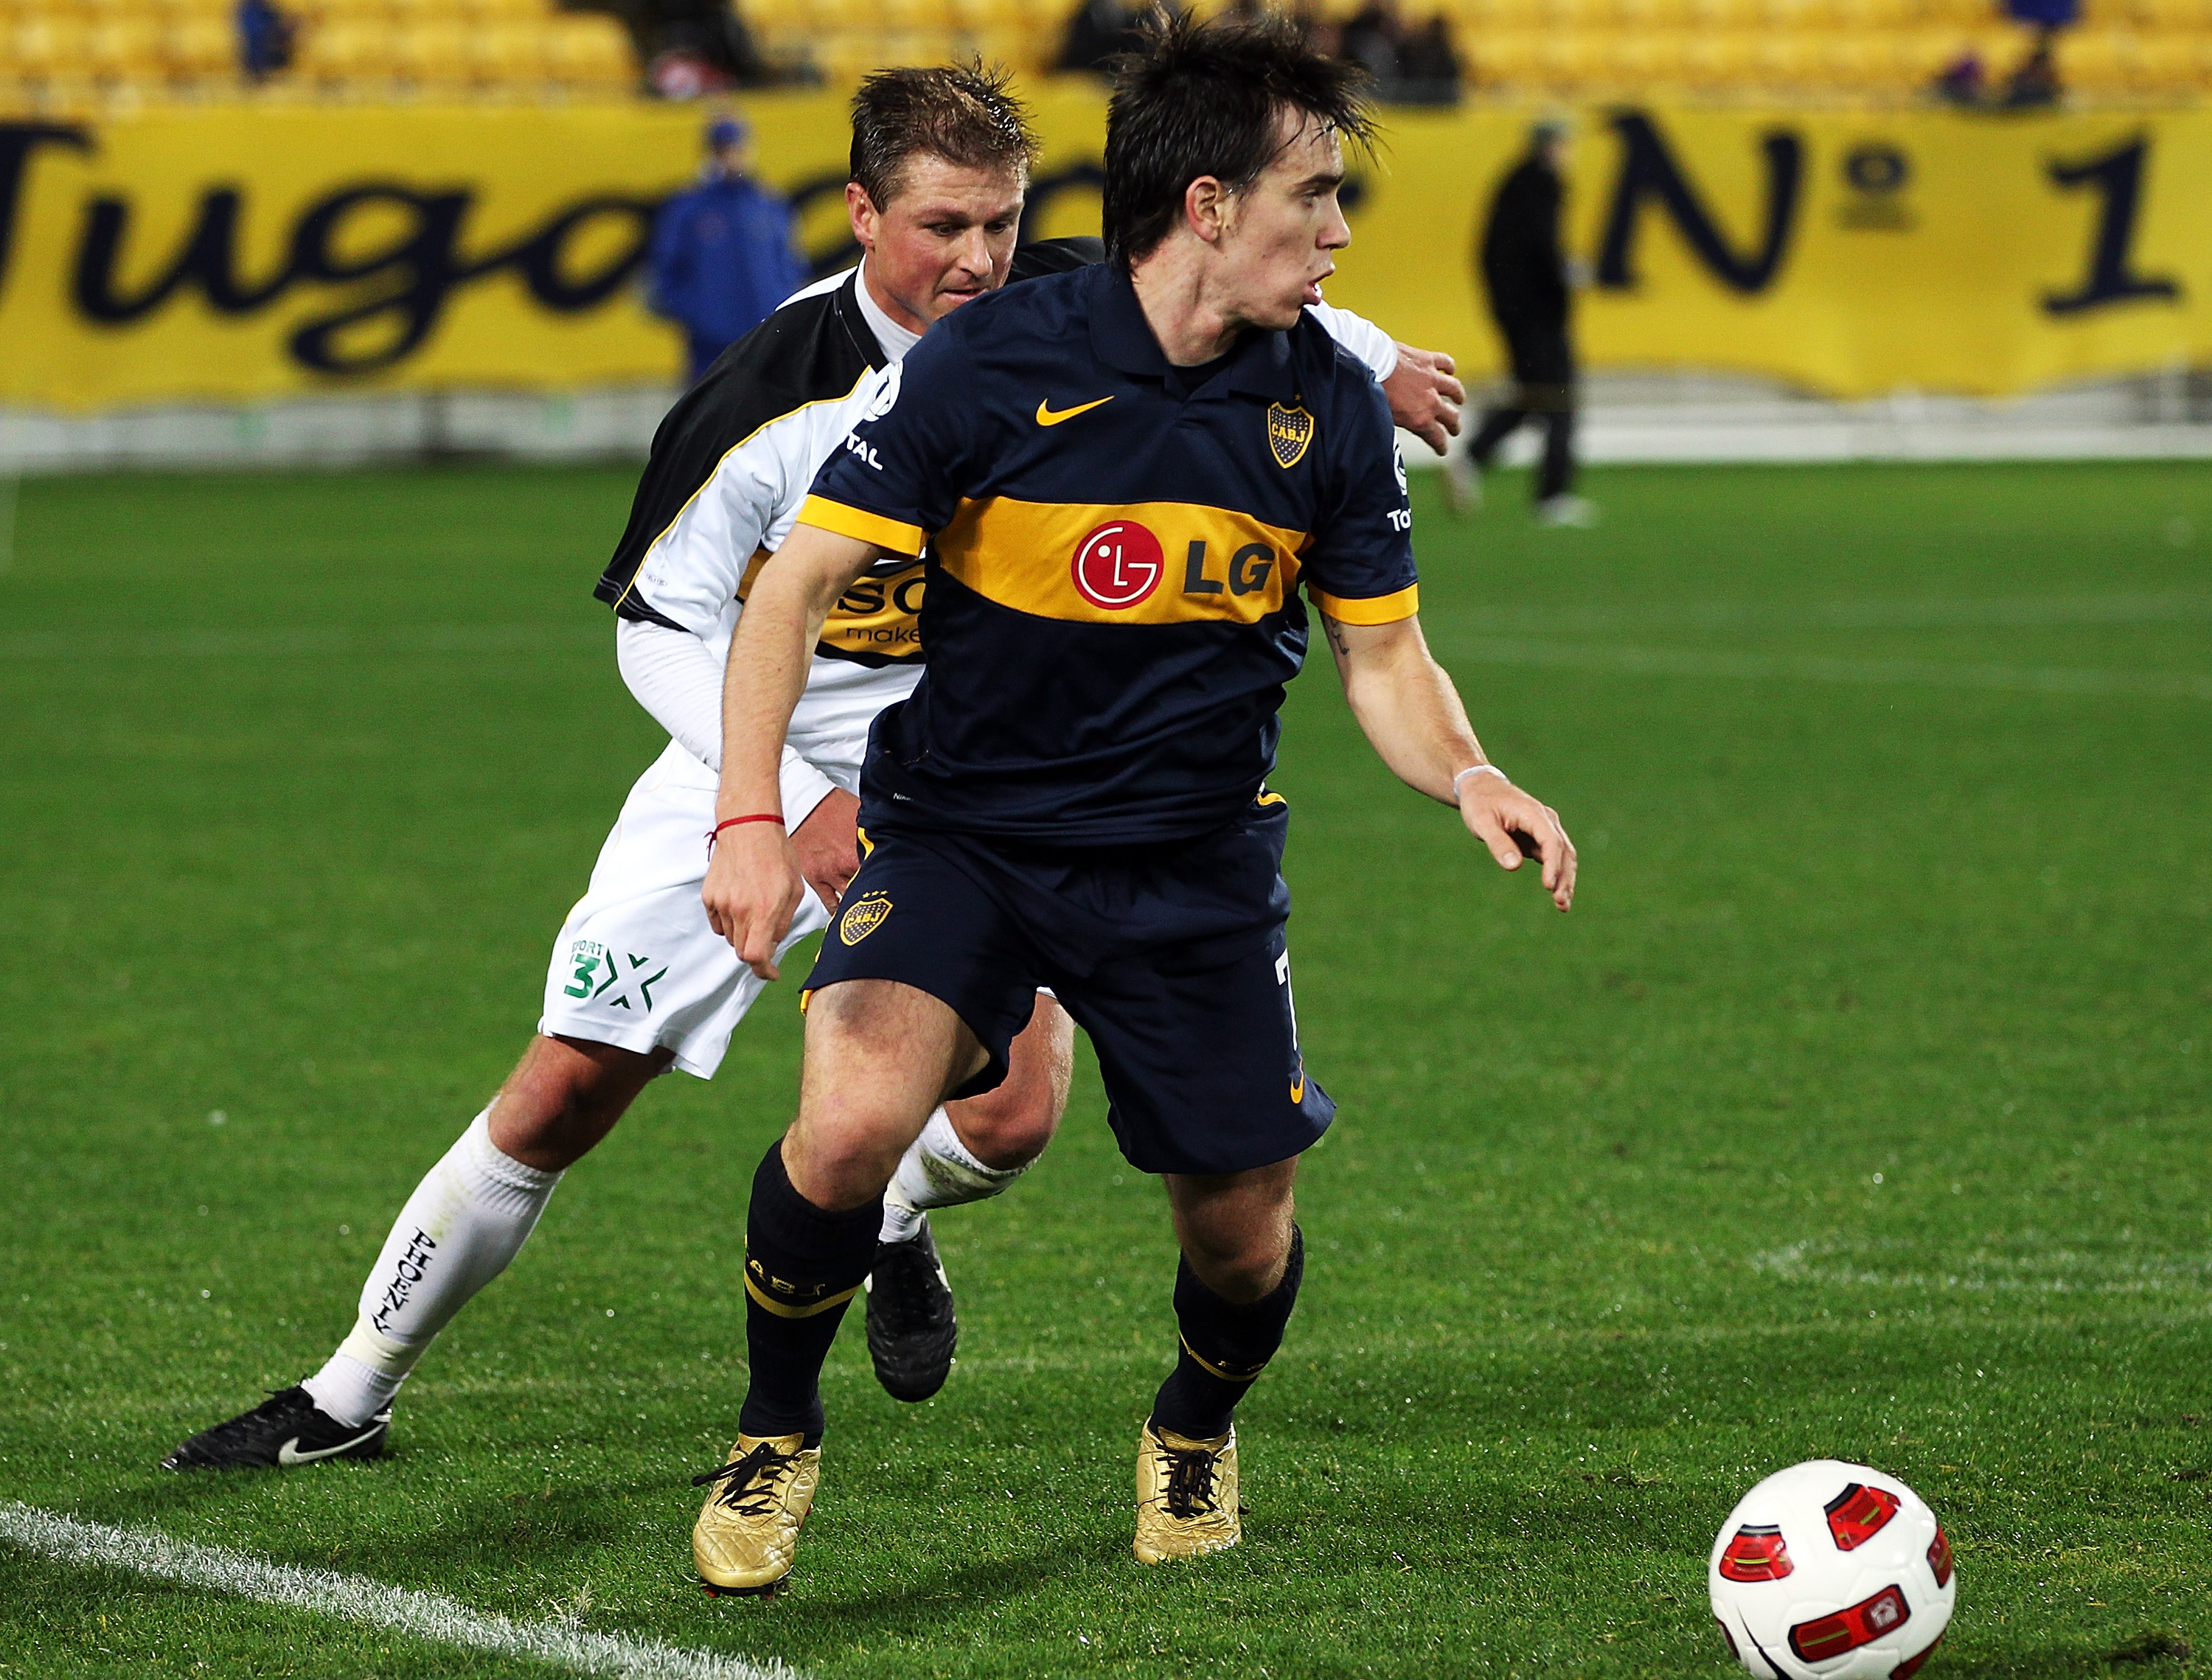 WELLINGTON, NEW ZEALAND - JULY 23:  Pablo Mouche of the Boca Juniors gets past Ben Sigmund of the Phoenix during the pre-season friendly match between Wellington Phoenix and Boca Juniors at Westpac Stadium on July 23, 2010 in Wellington, New Zealand.  (Ph